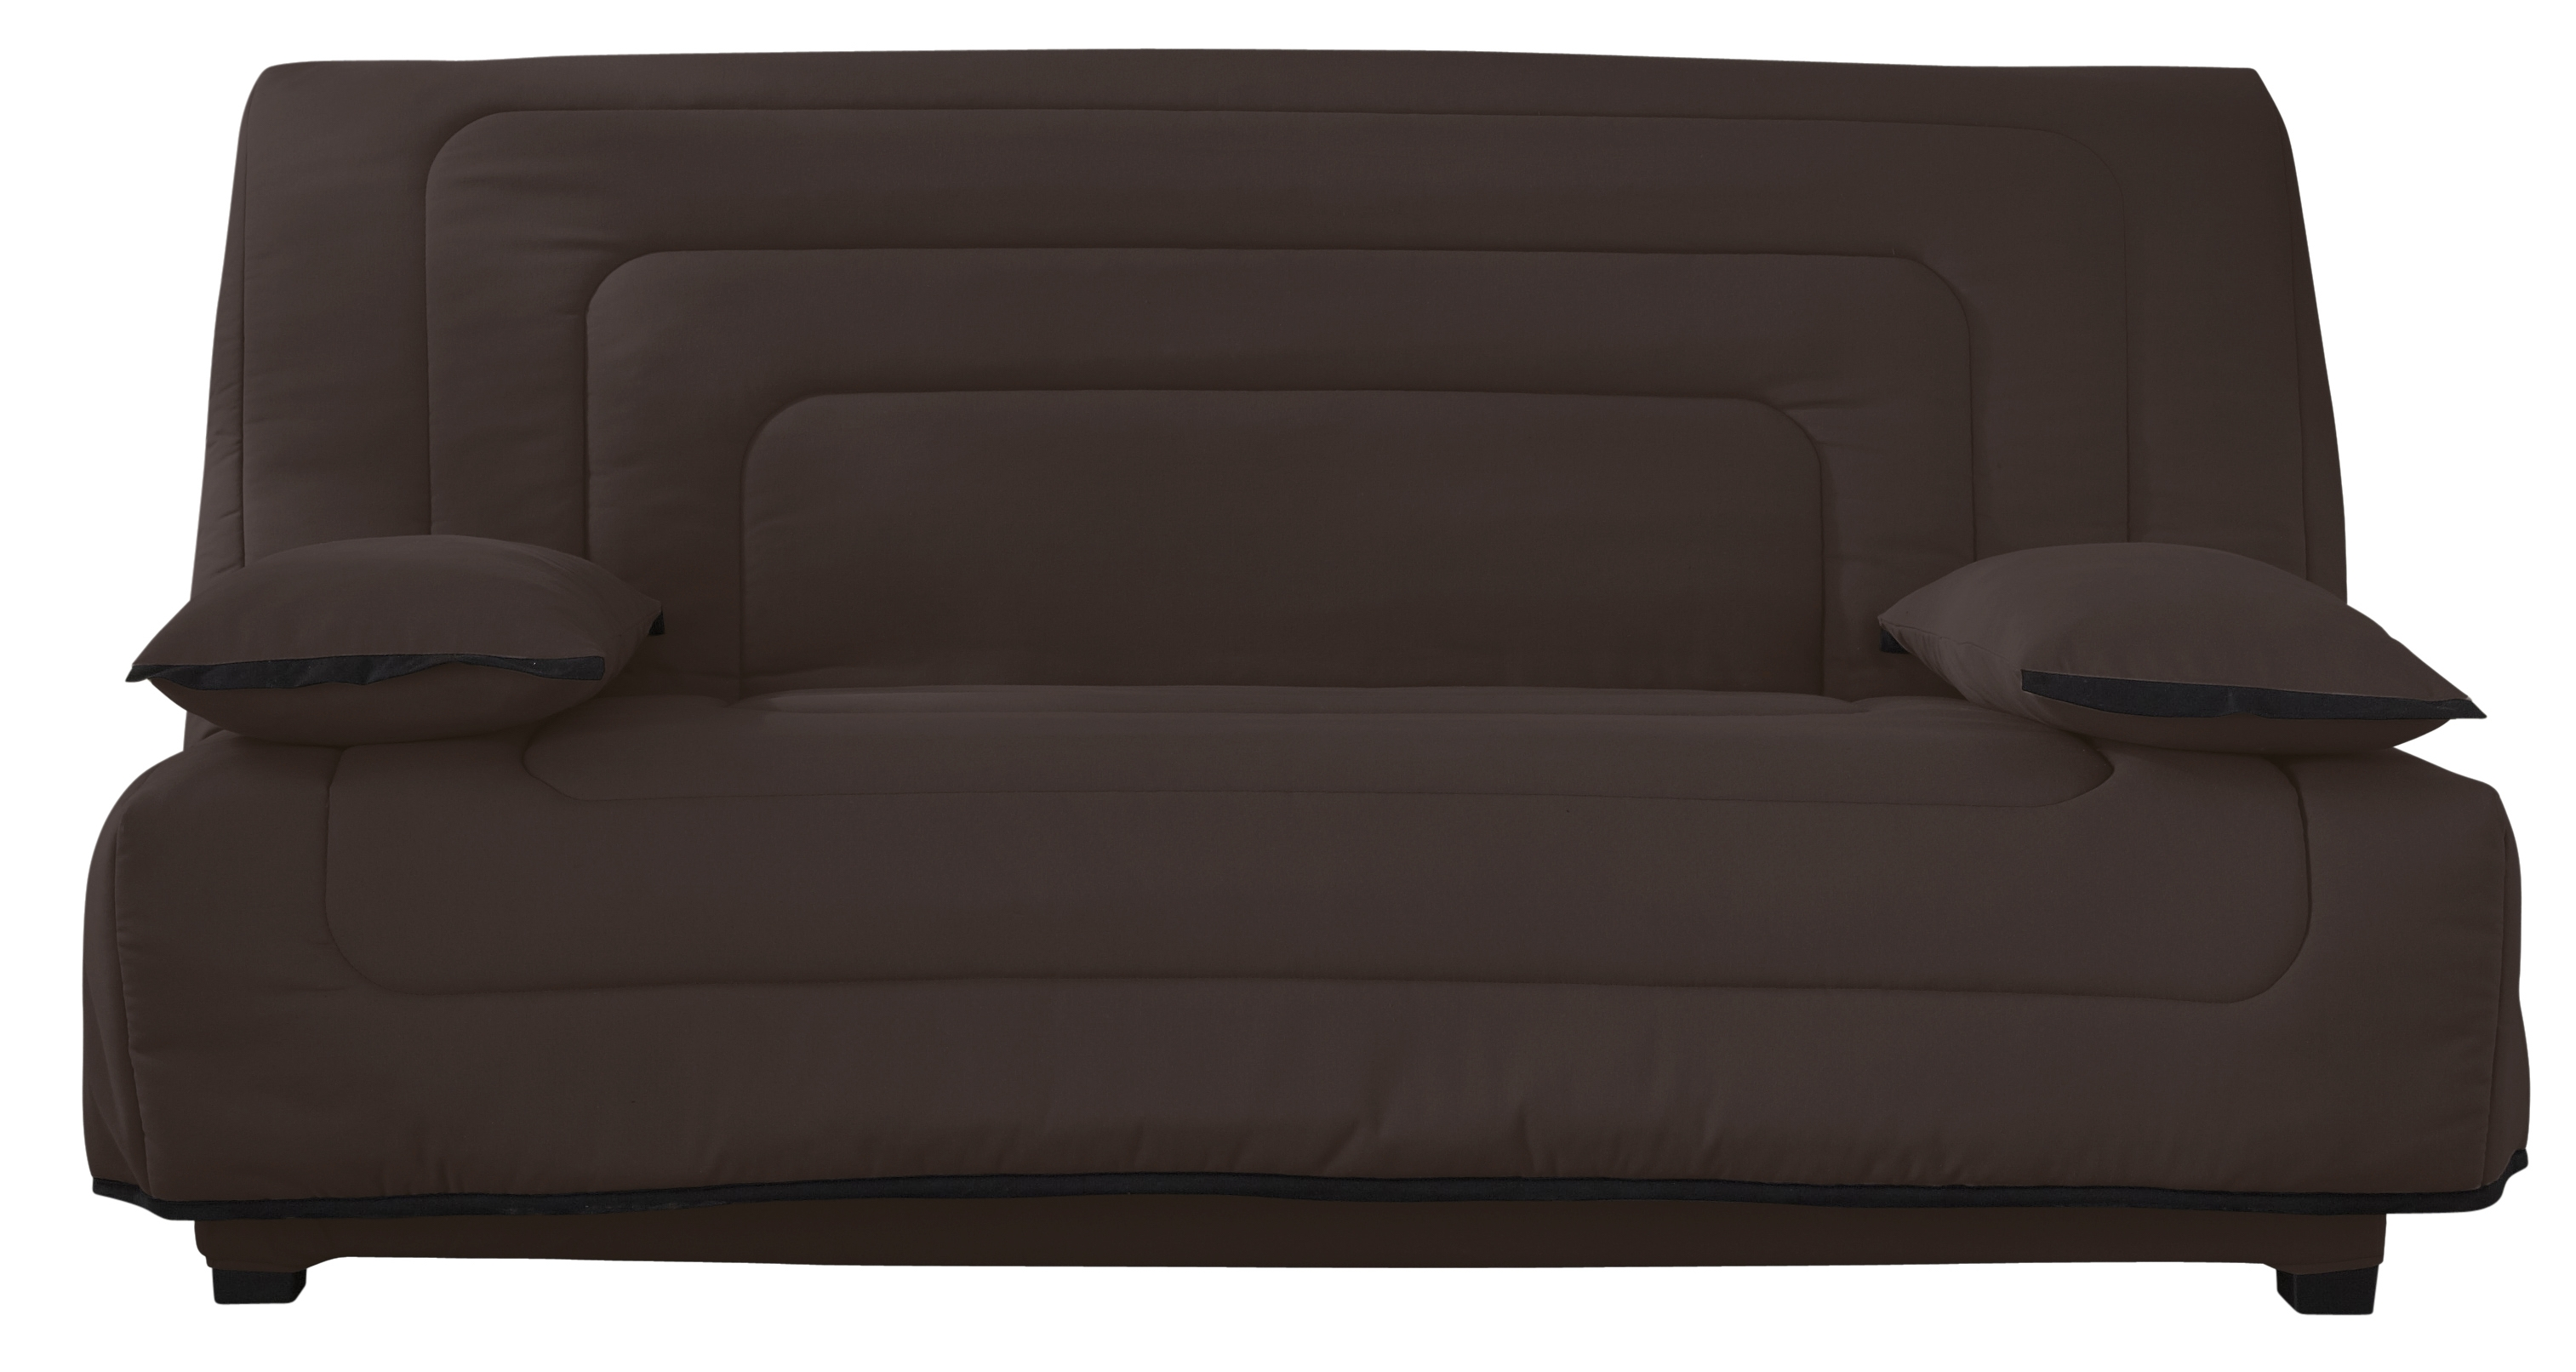 Clic clac marron matelas simmons 140 winter - Housse clic clac marron ...